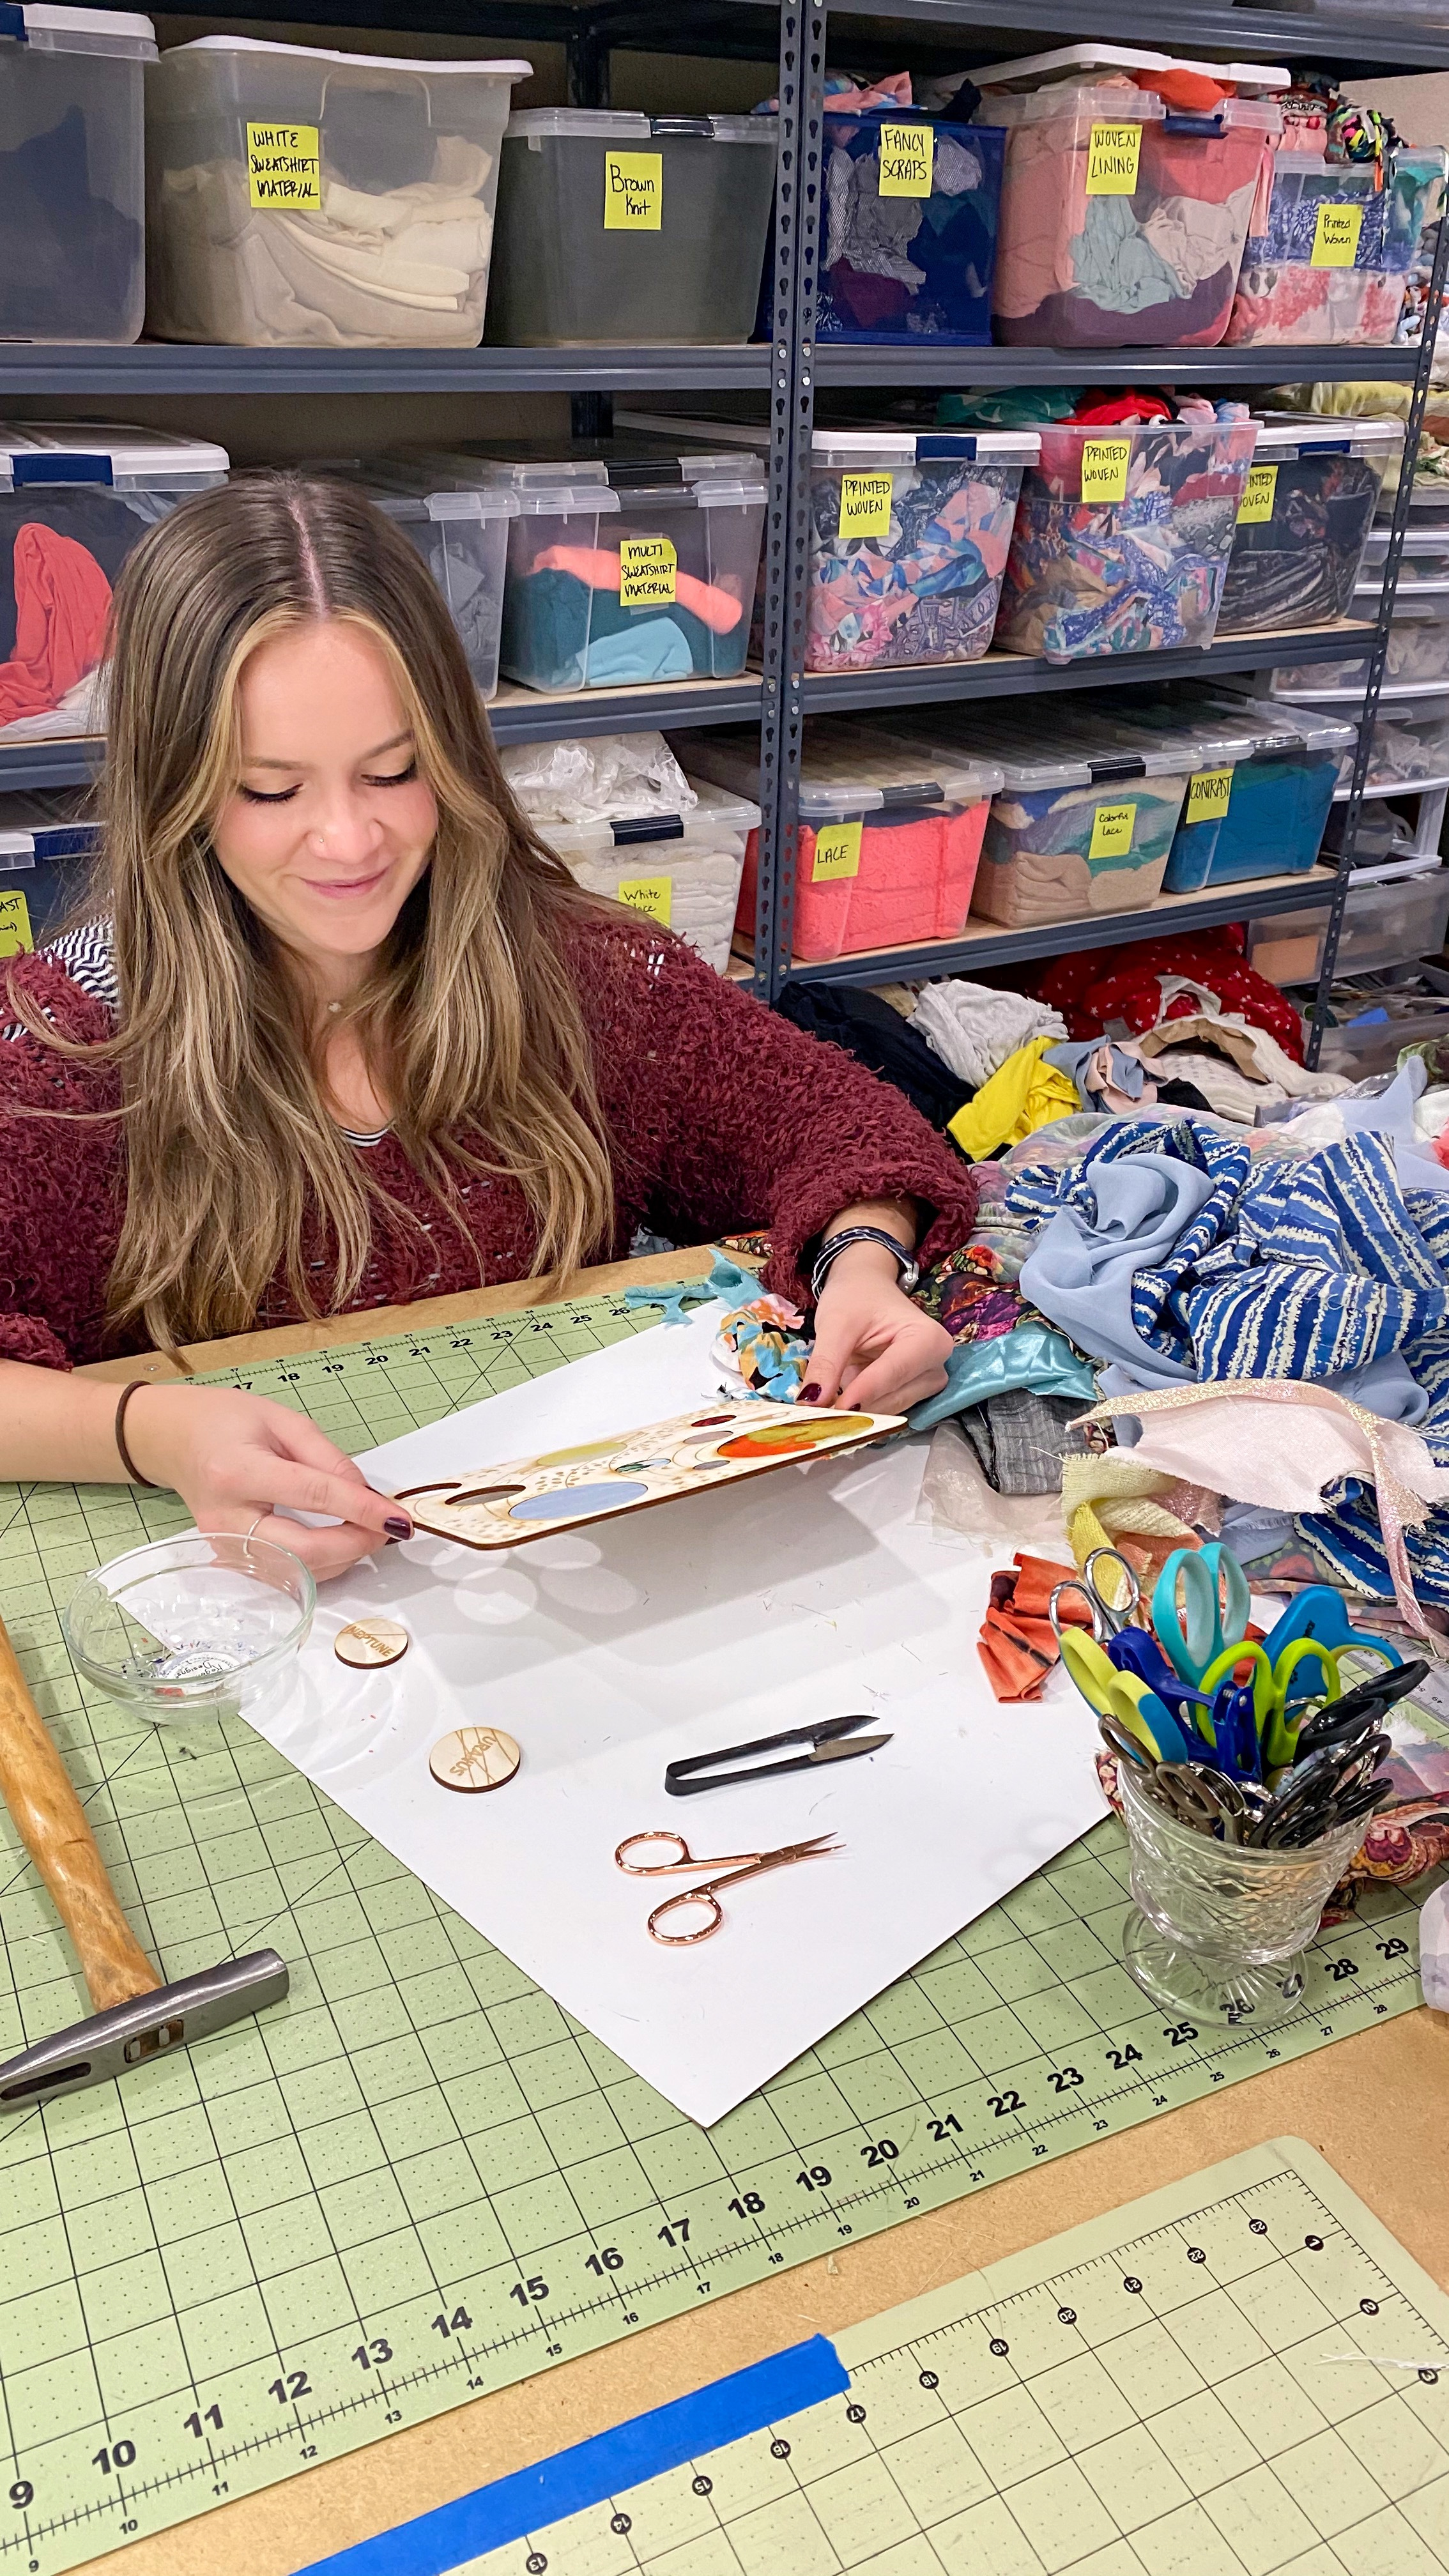 Intern Cassidy Dutton working on her DIY educational art kit craft project for kids - textile and wood solar system space galaxy planets astronaut